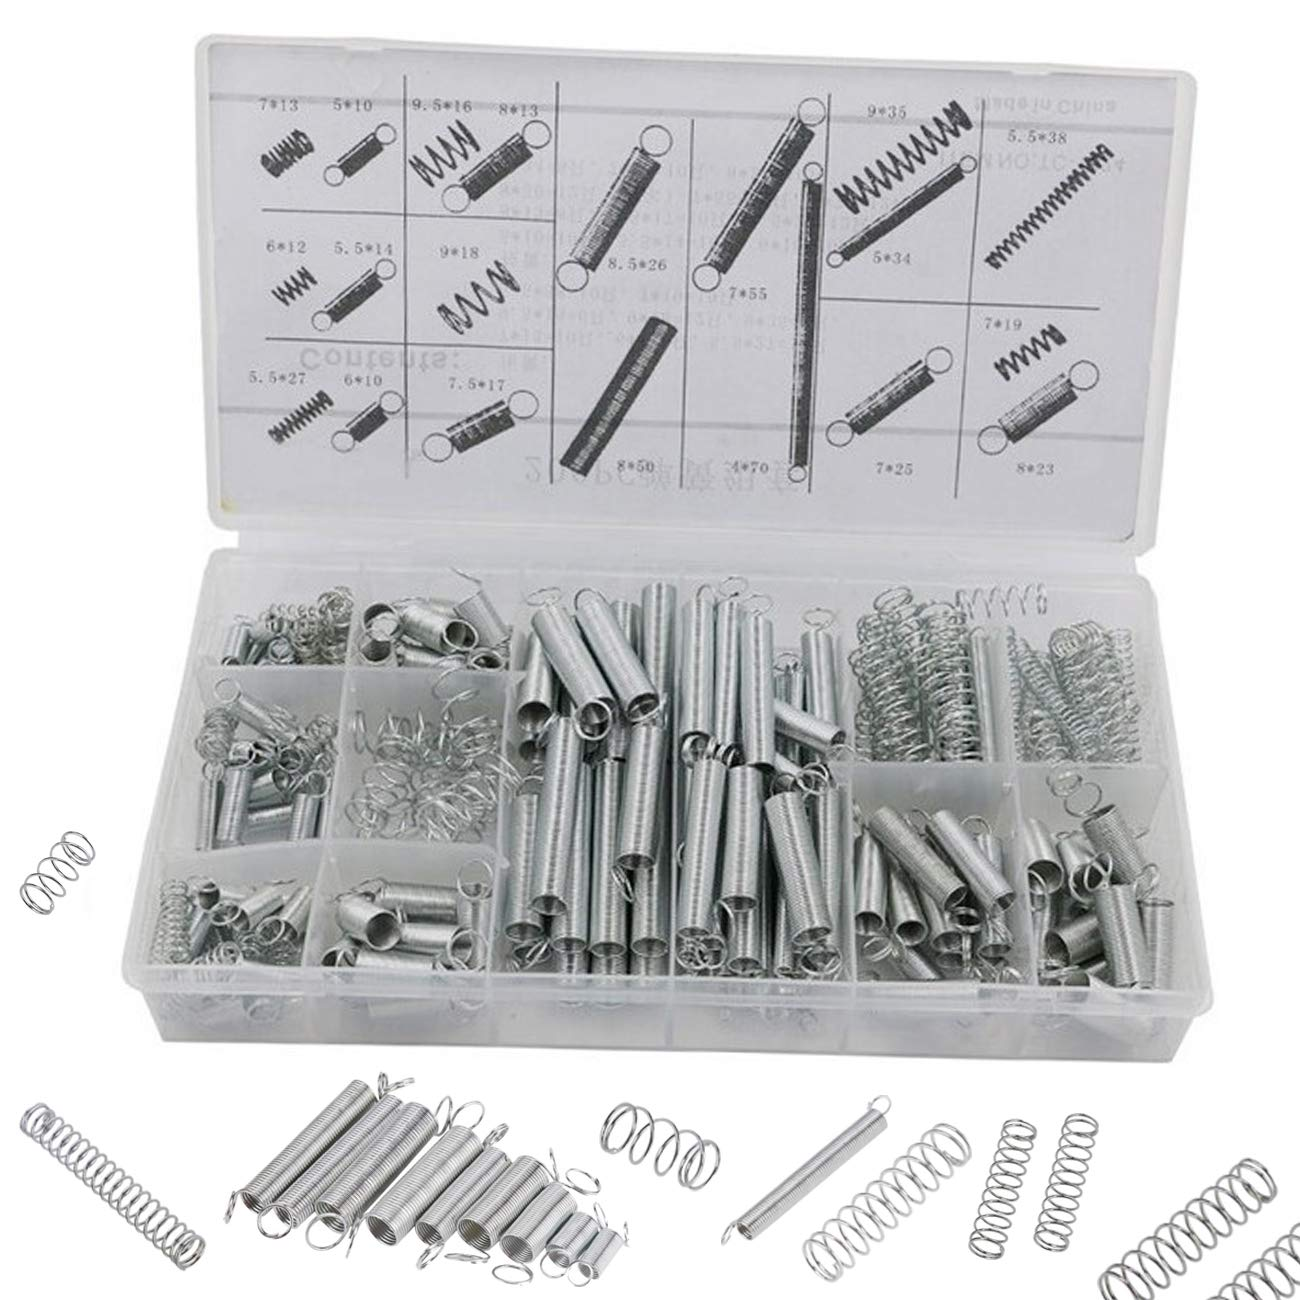 TinaWood Compression and Extension Spring Assortment - 200 Piece Set of Heavy Duty and Durable Compressed Spring - Tools & Equipment, Hand Tools